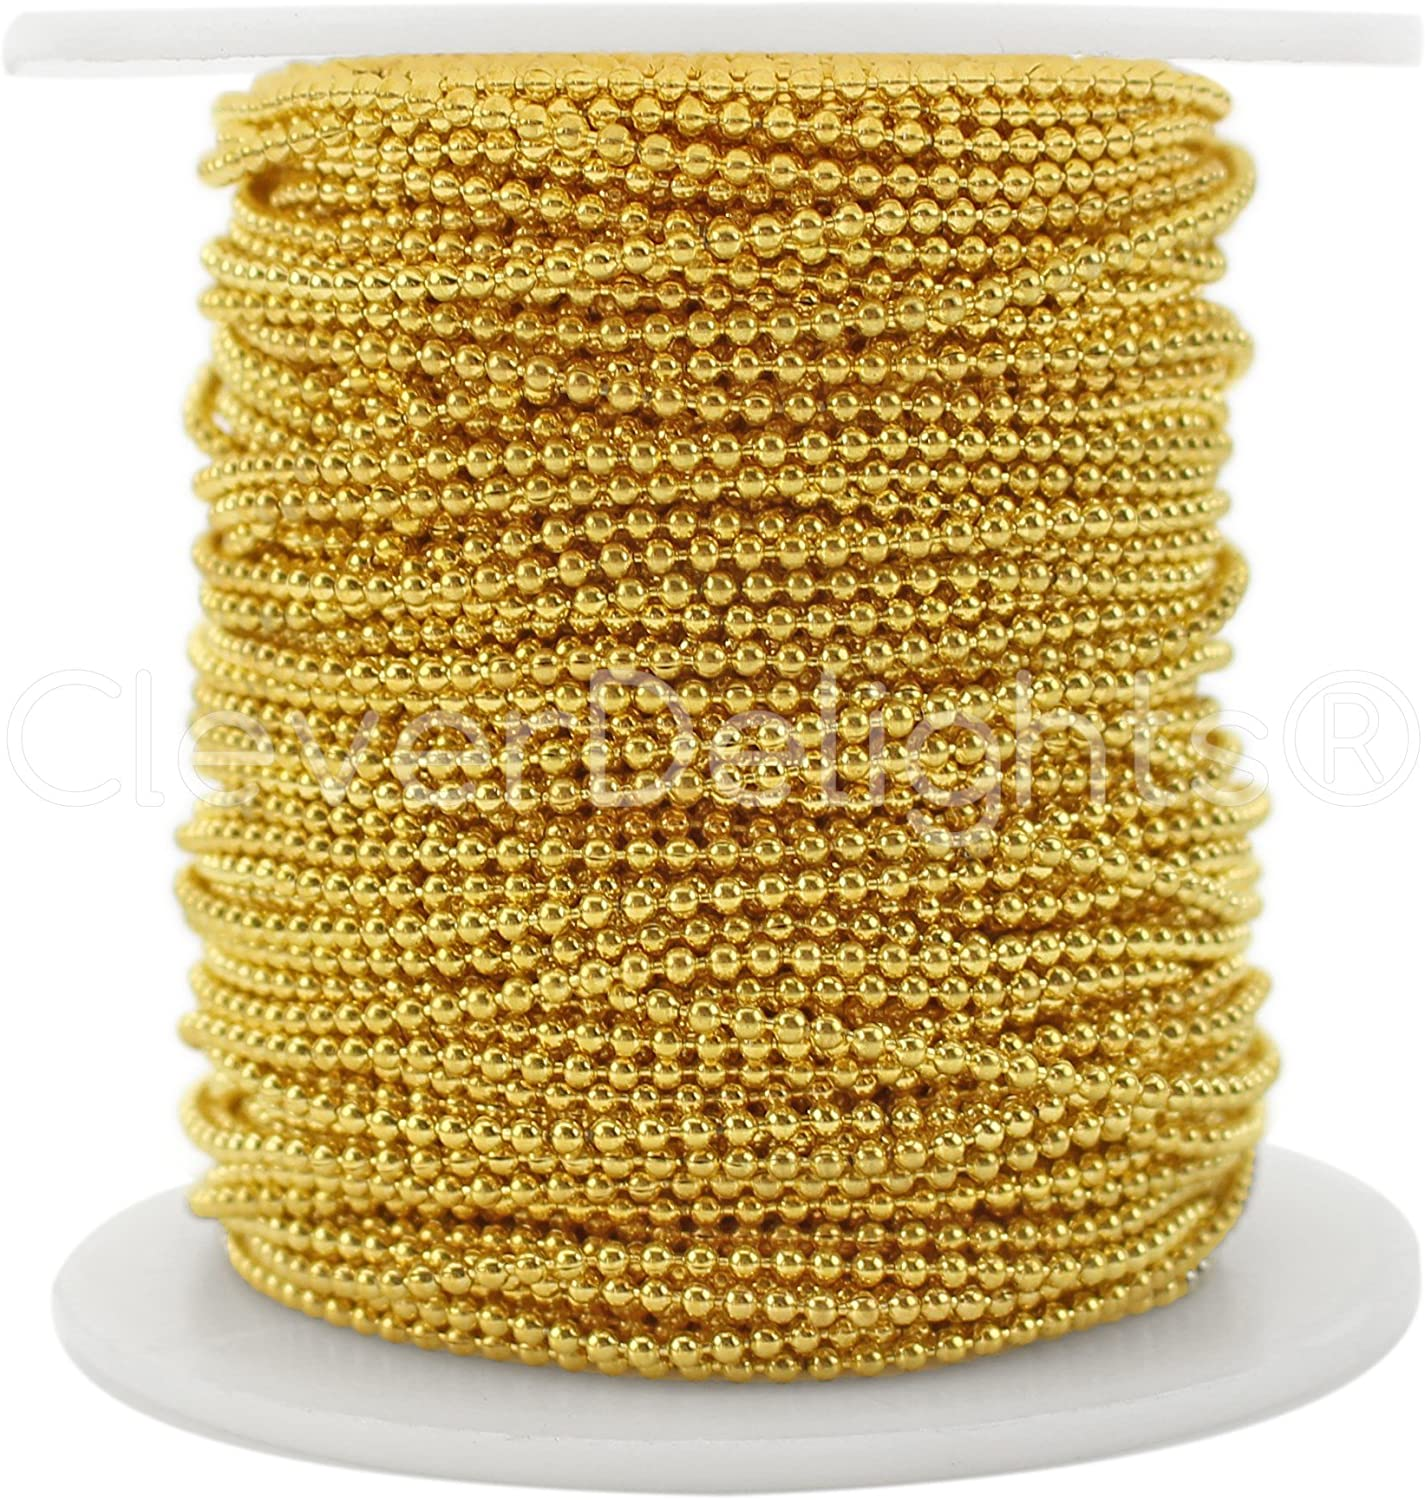 Pandahall 5M//5Yard Aluminum Curb Chain Link Light Gold Color Twisted Cross Necklace Finding Chains with Spool for Jewelry Making DIY Crafts Findings Supplies 10x6.5x1.8mm